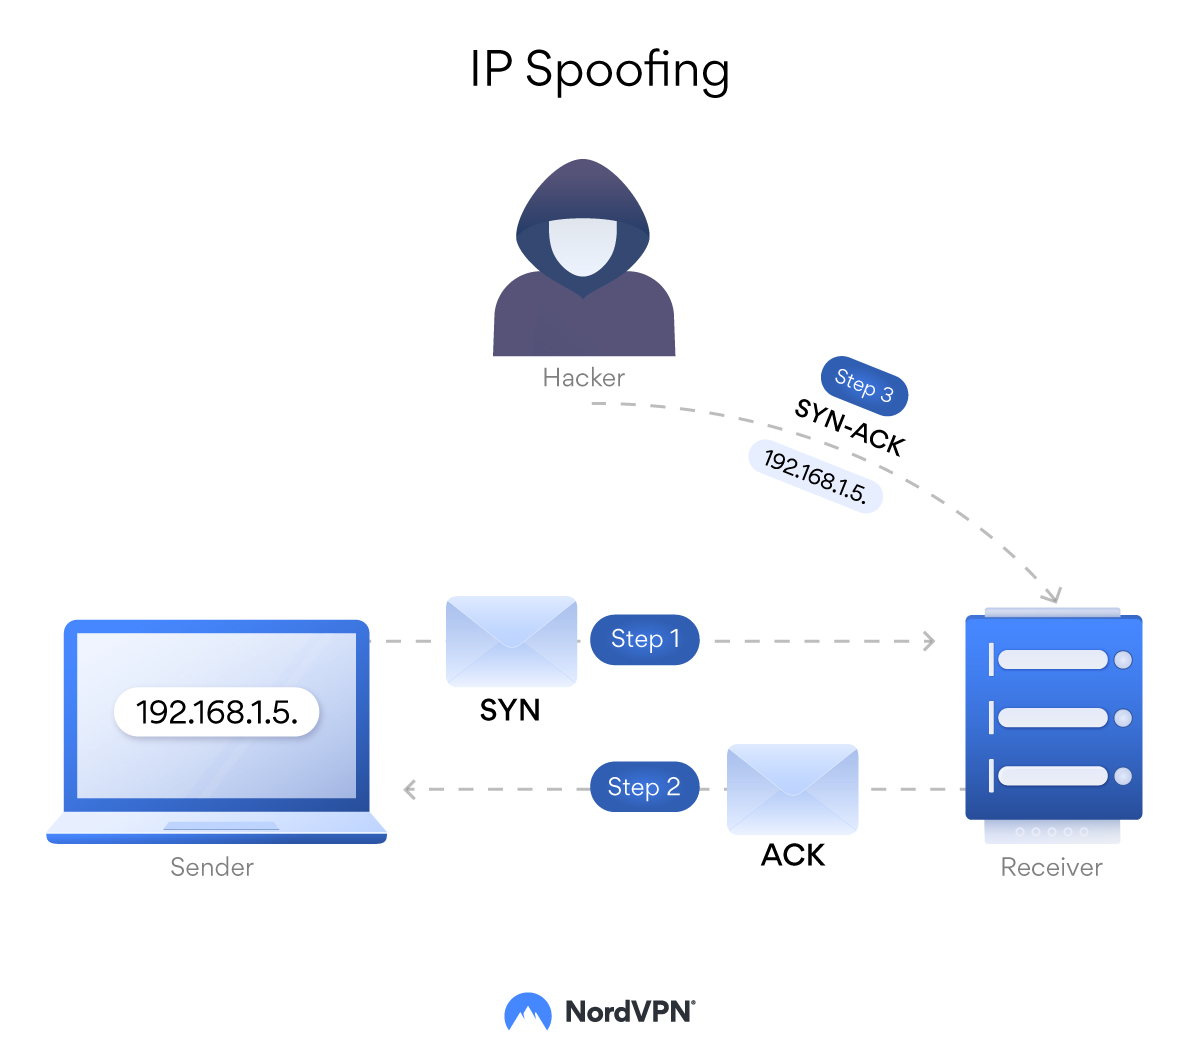 How IP spoofing works